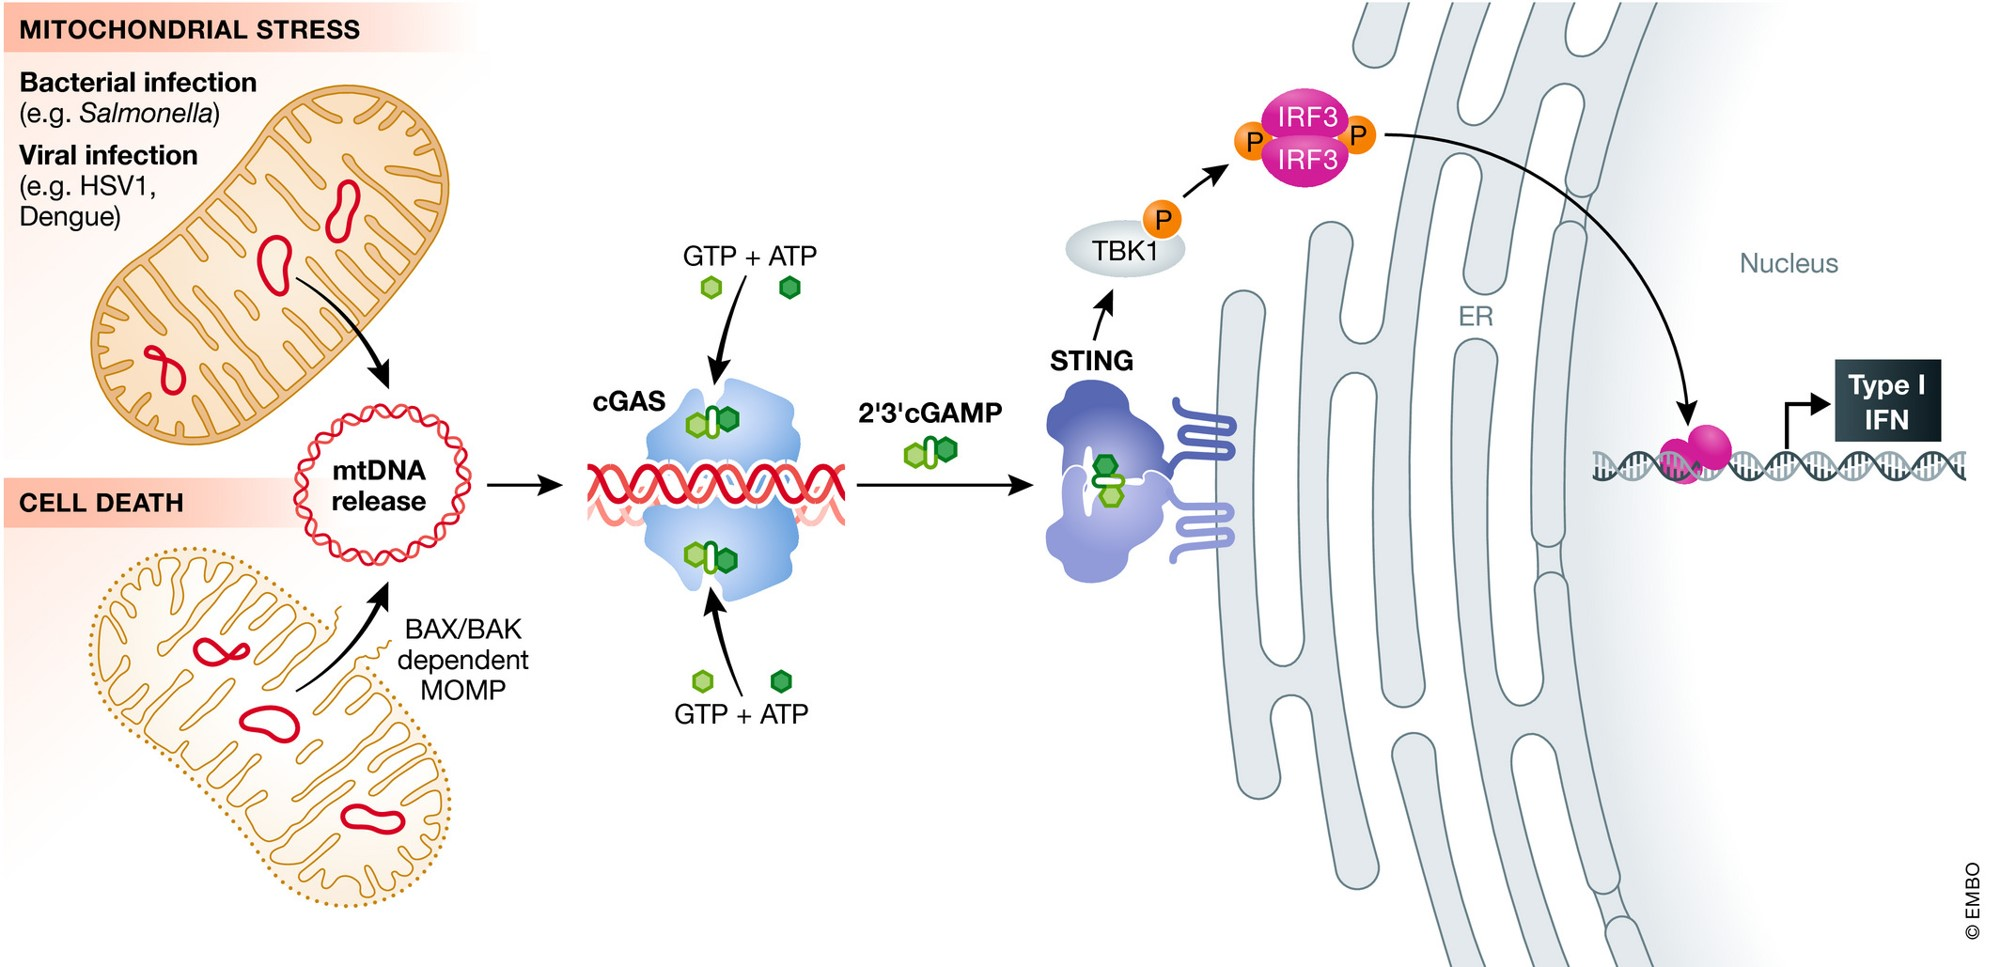 Tumors hijack the cell death pathway to escape radiation induced immune onslaught